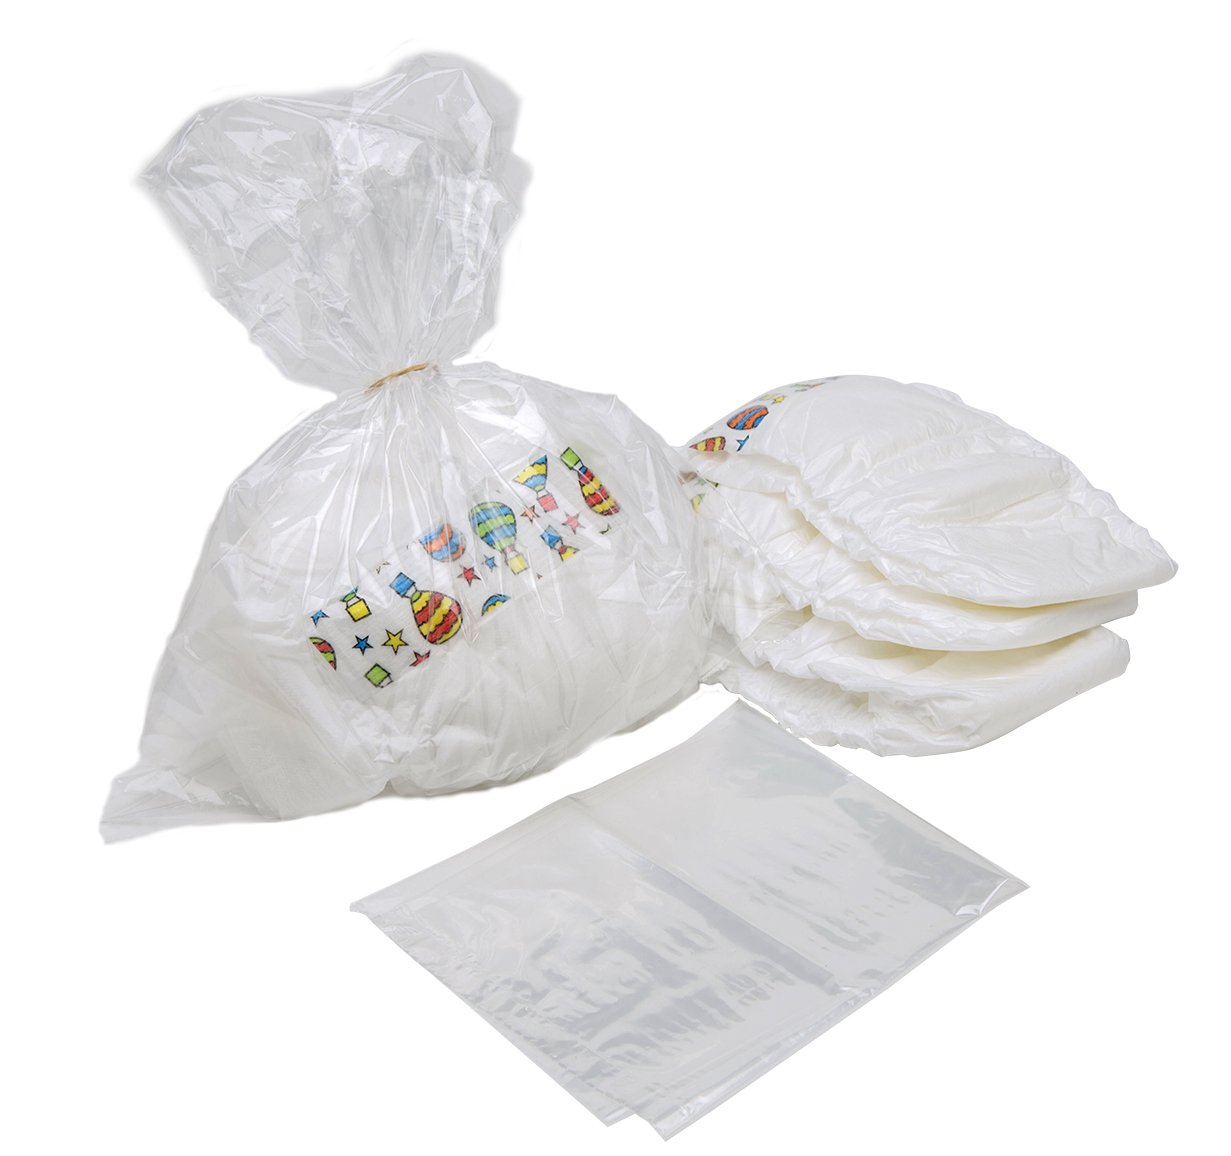 AMMEX - DB750 - Diaper Disposal Bags, 750 Bags/Roll (Case of 4 Rolls)